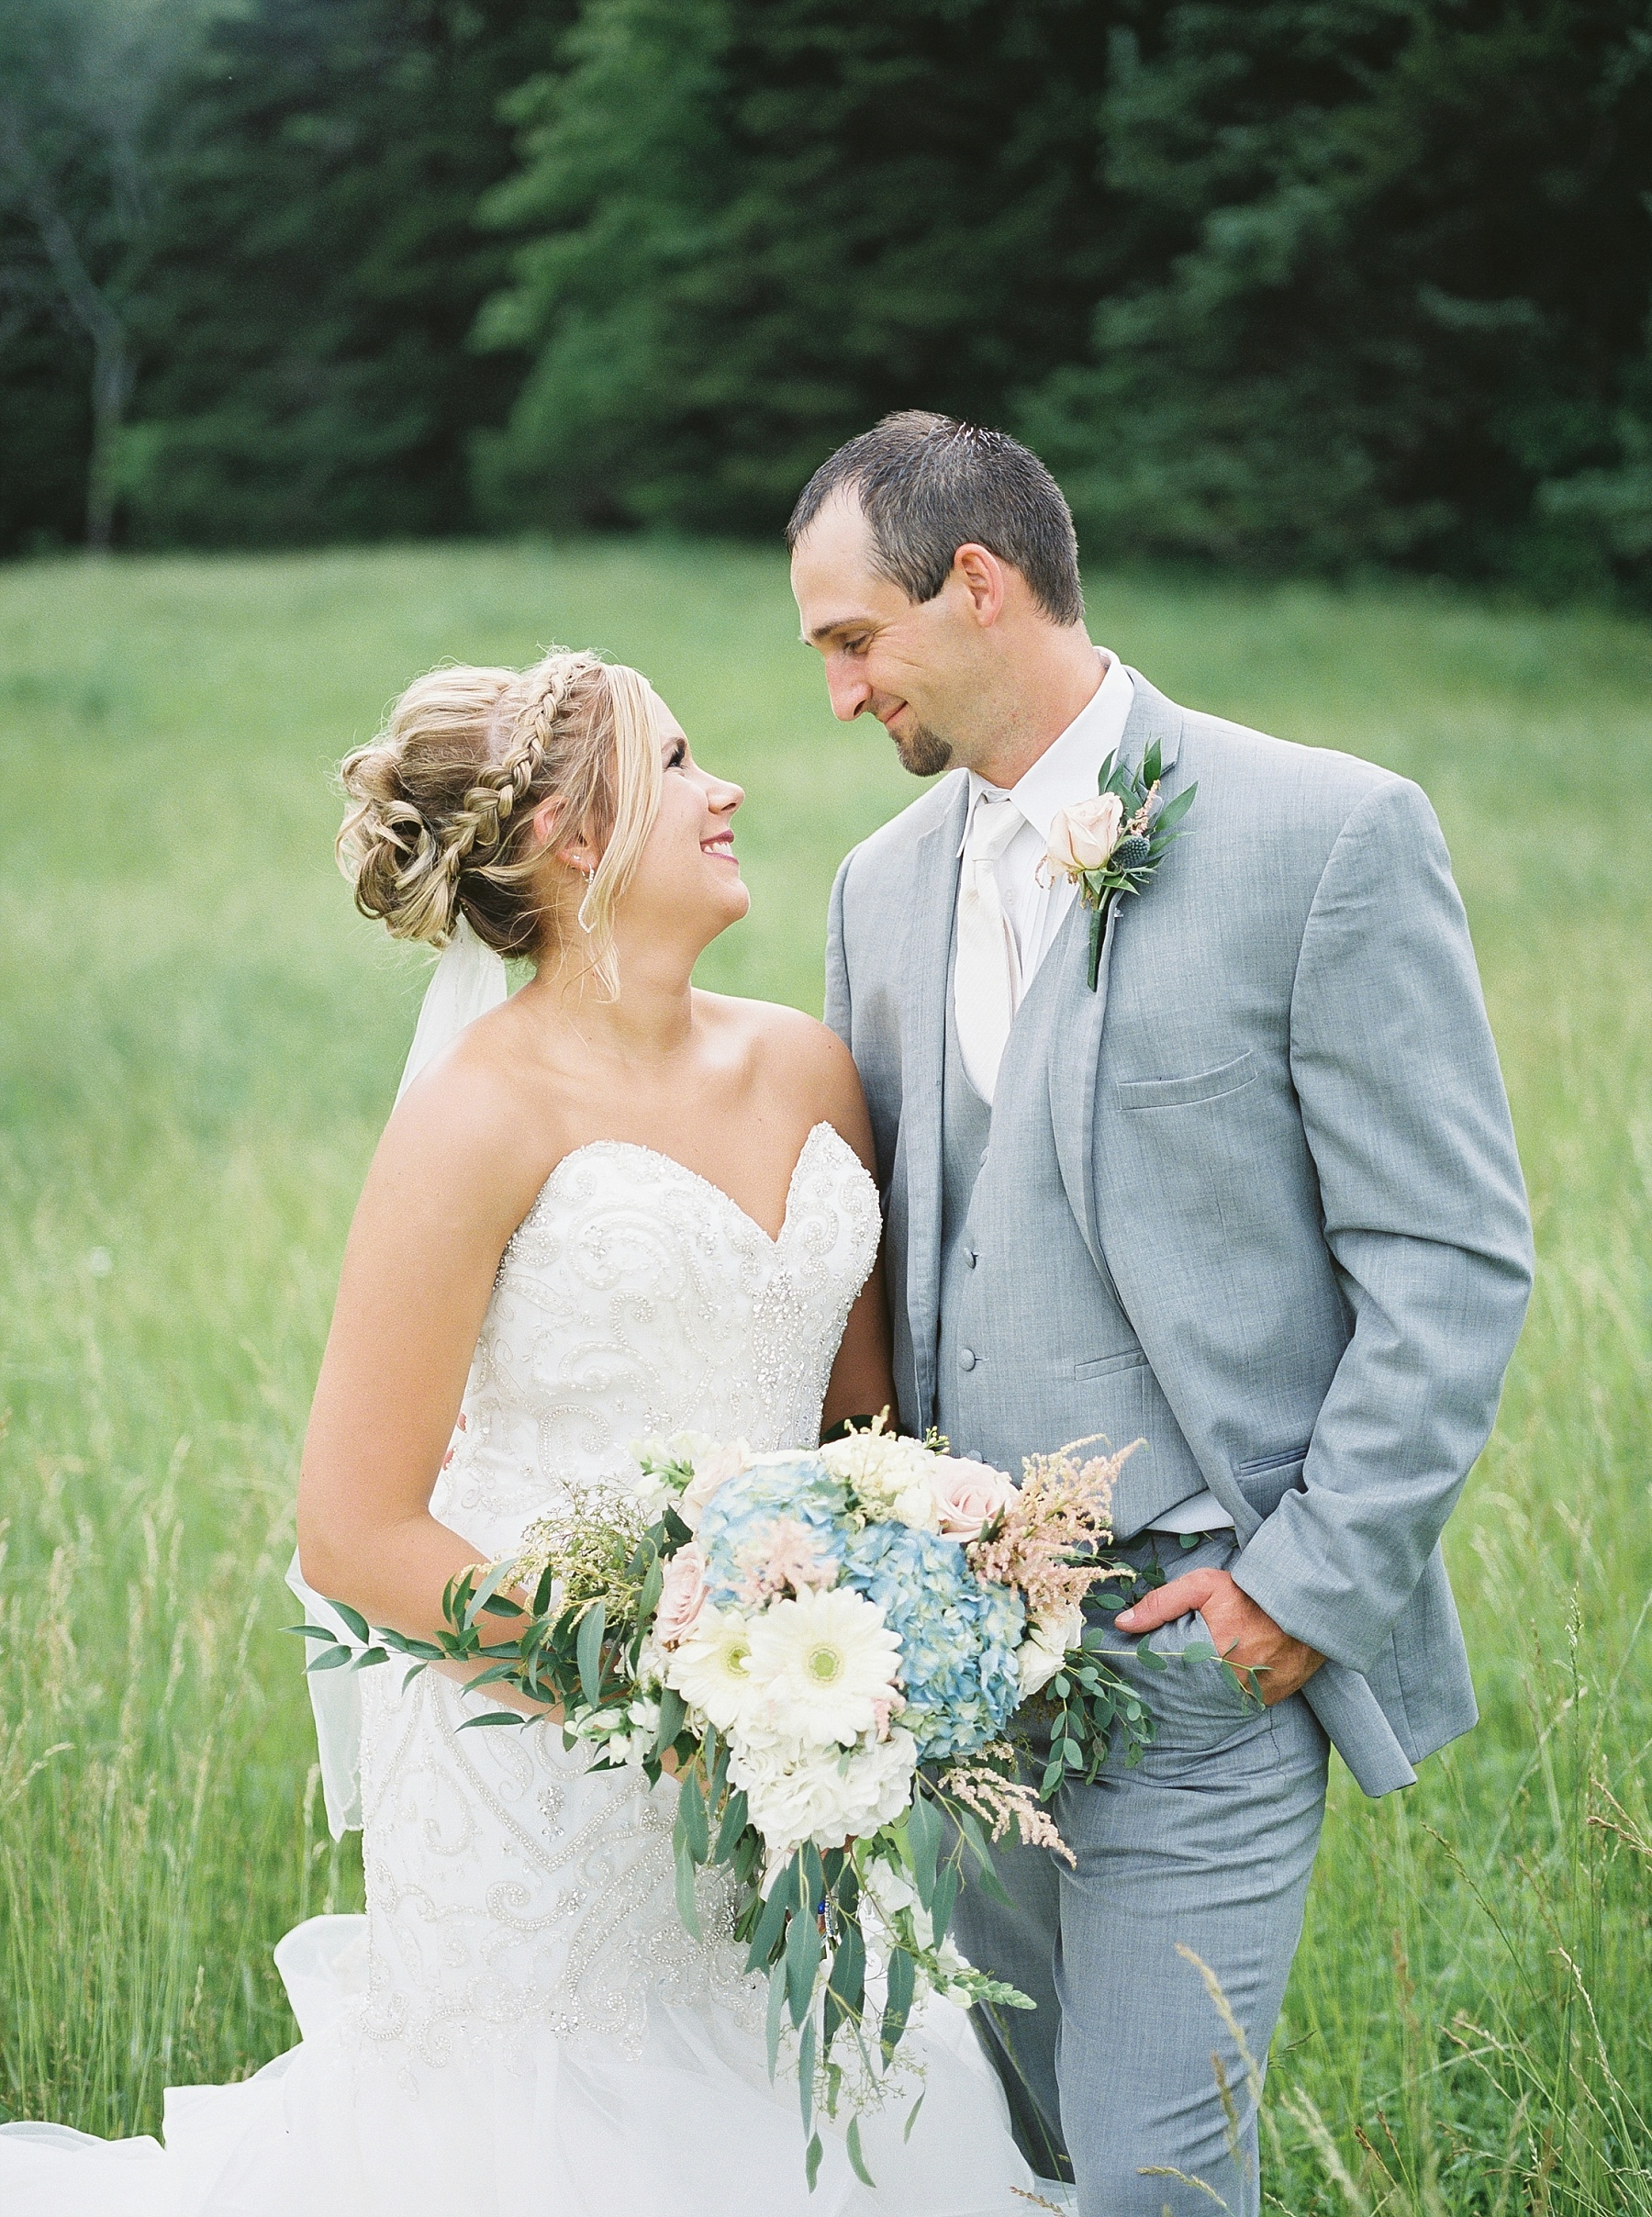 Sky Blue and Quartz Spring Wedding at Open Fields of Family Farm by Kelsi Kliethermes Photography Best Missouri and Maui Wedding Photographer_0054.jpg